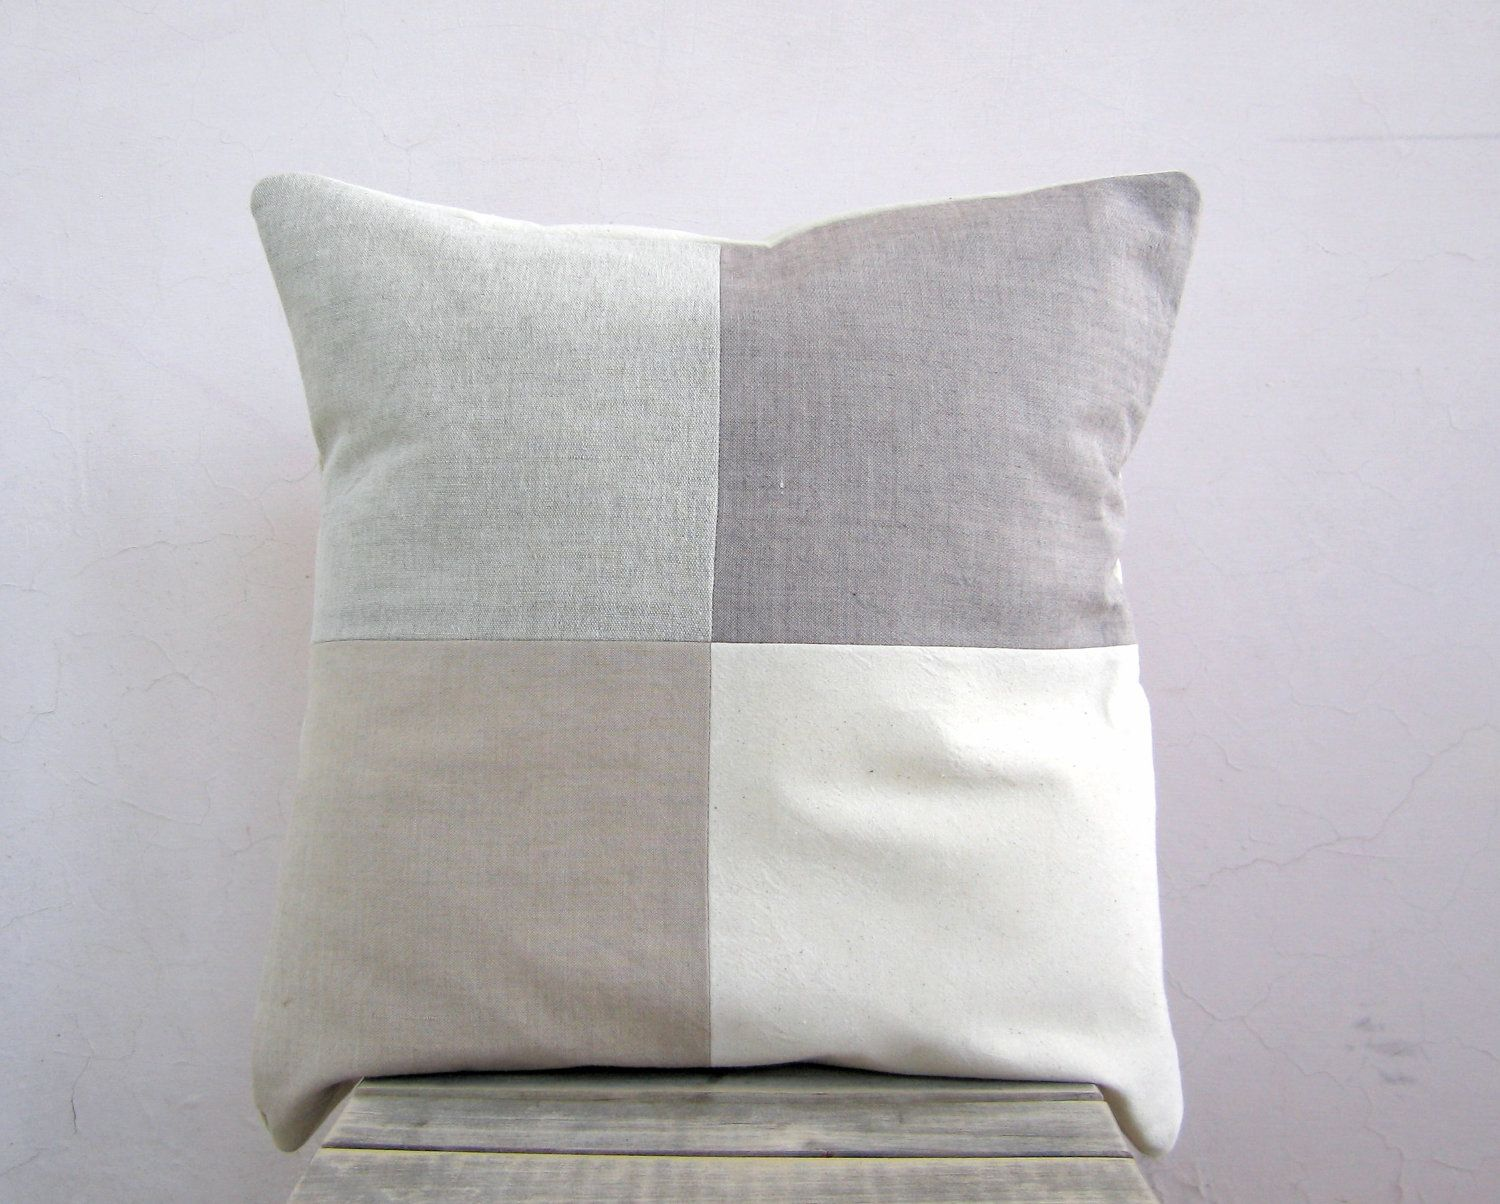 designer sofa pillows milano leather 2 piece chaise sectional modern neutral throw pillow organic cotton rustic